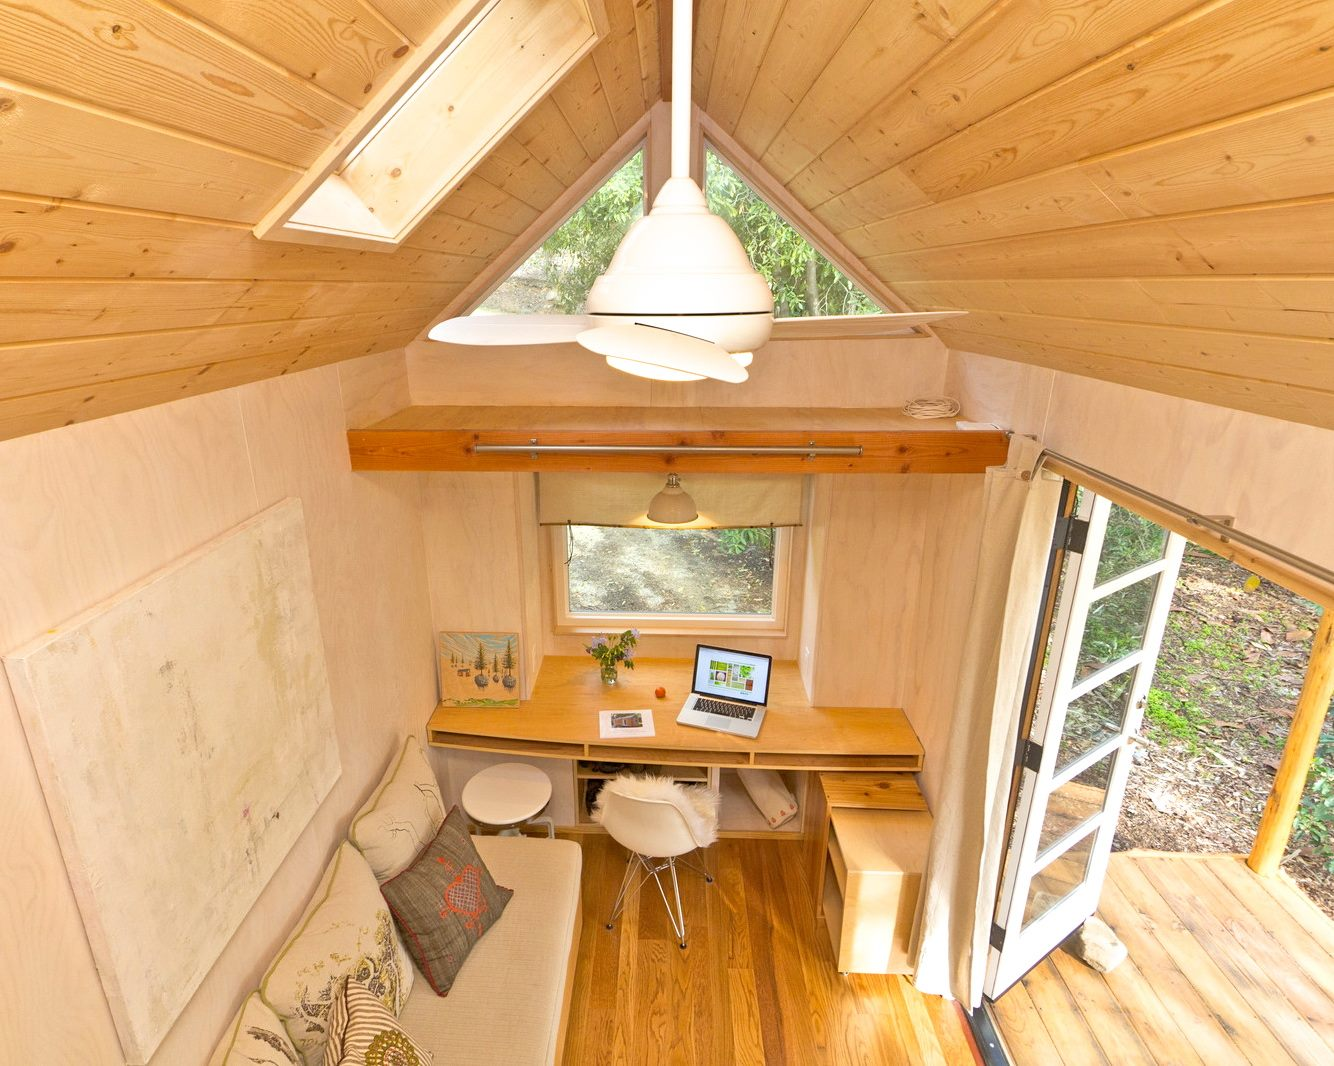 Vinas Tiny House Tiny House Swoon